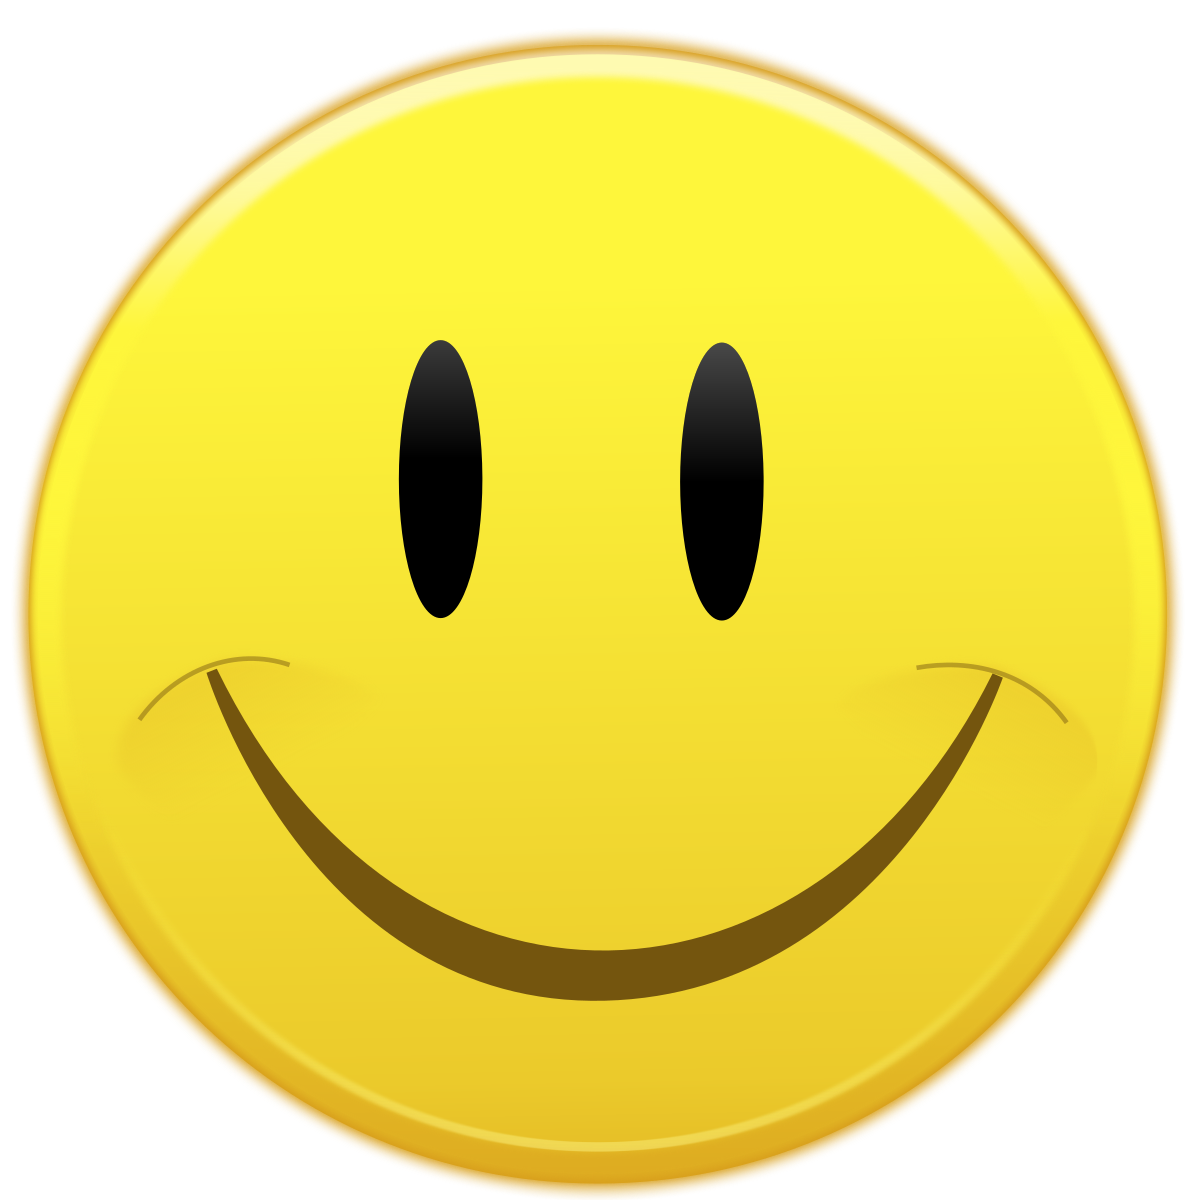 90s rave smiley face png. Wikipedia